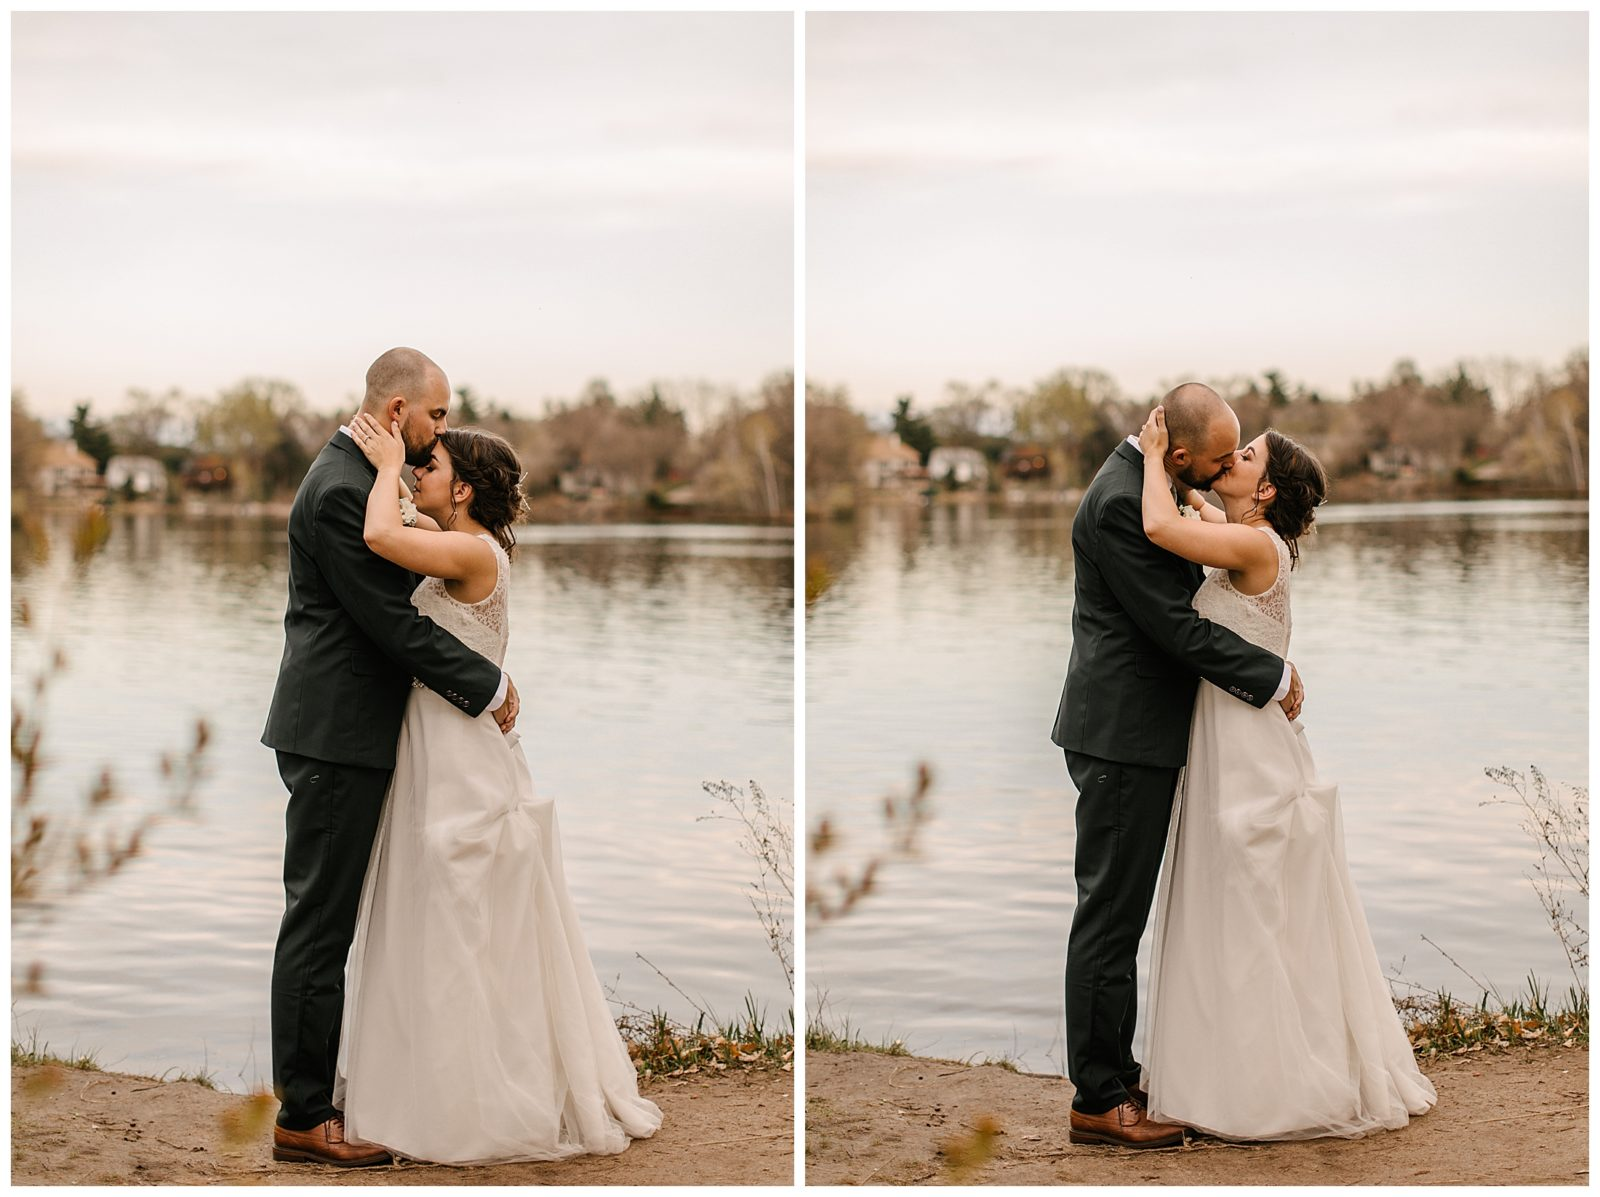 Silverwood Park wedding | May 4th wedding | Tigerlily Photography | Sixpence Events and Planning day of coordinating | pictures in front of the lake